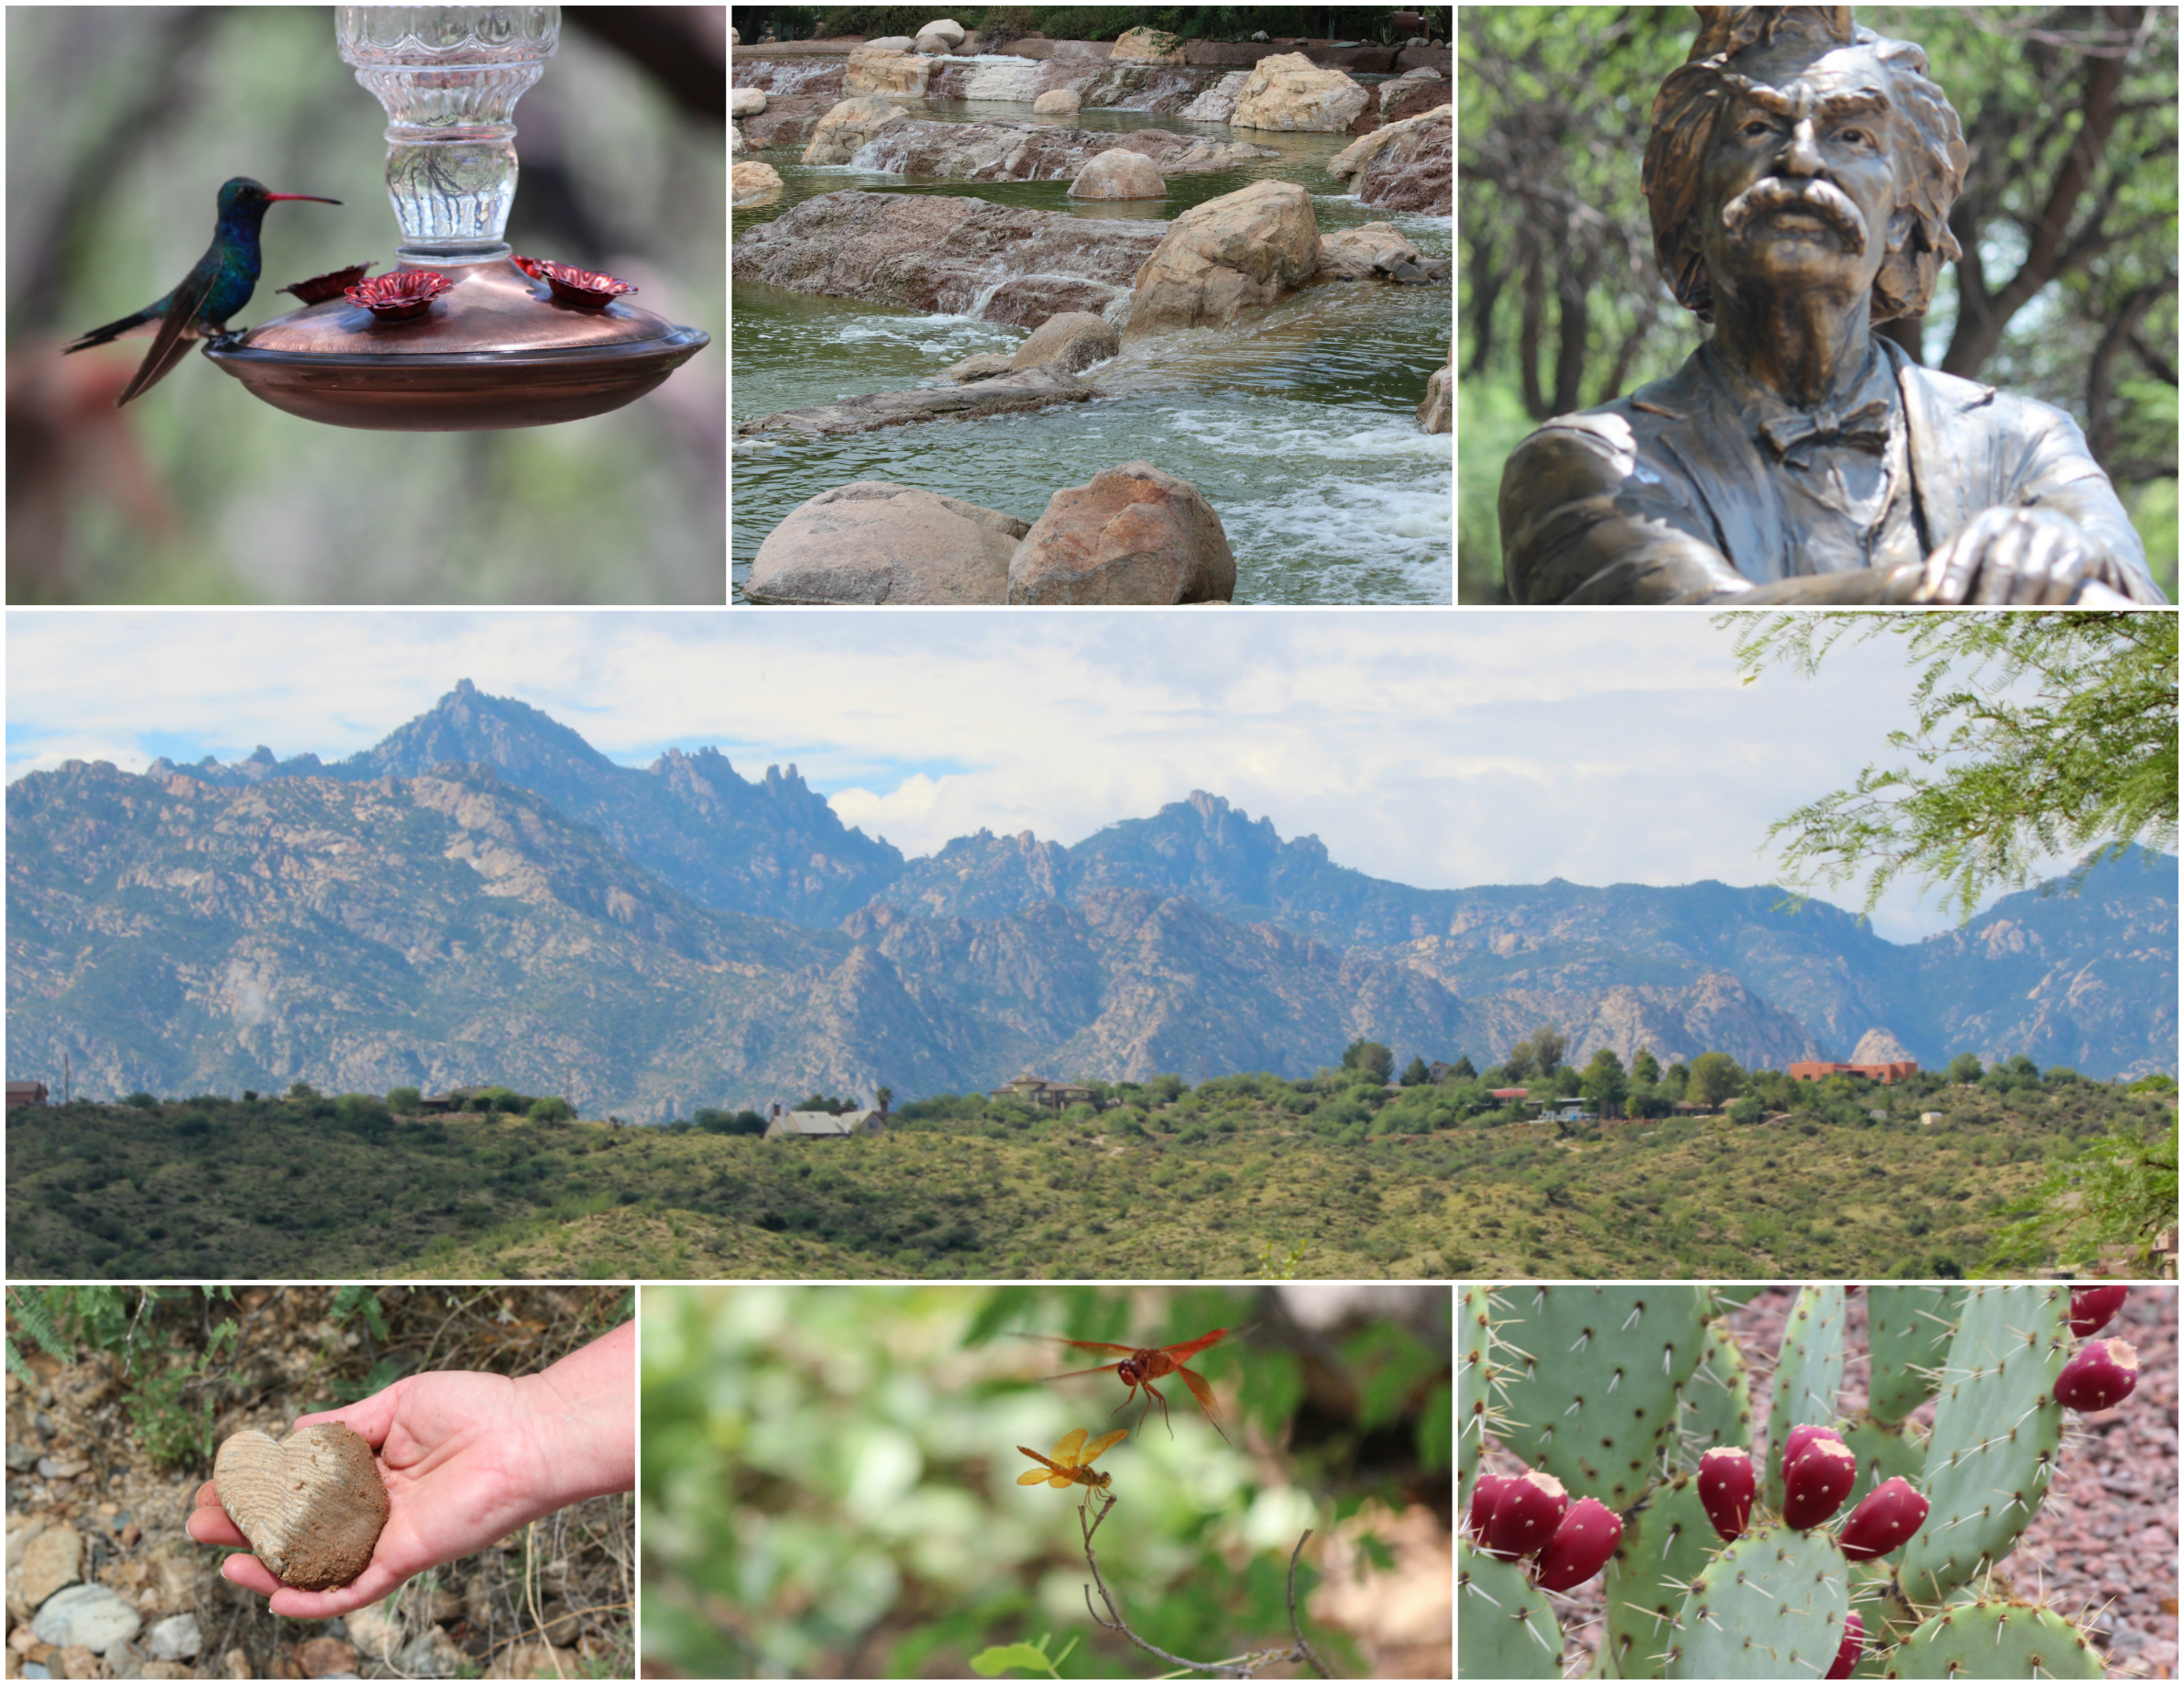 Miraval Collage - Clockwise from top left: Hummingbird at rest, water features, Mark Twain gazing, cactus with prickly pear, two dragonflies meeting, heart rock, and lovely views all around!